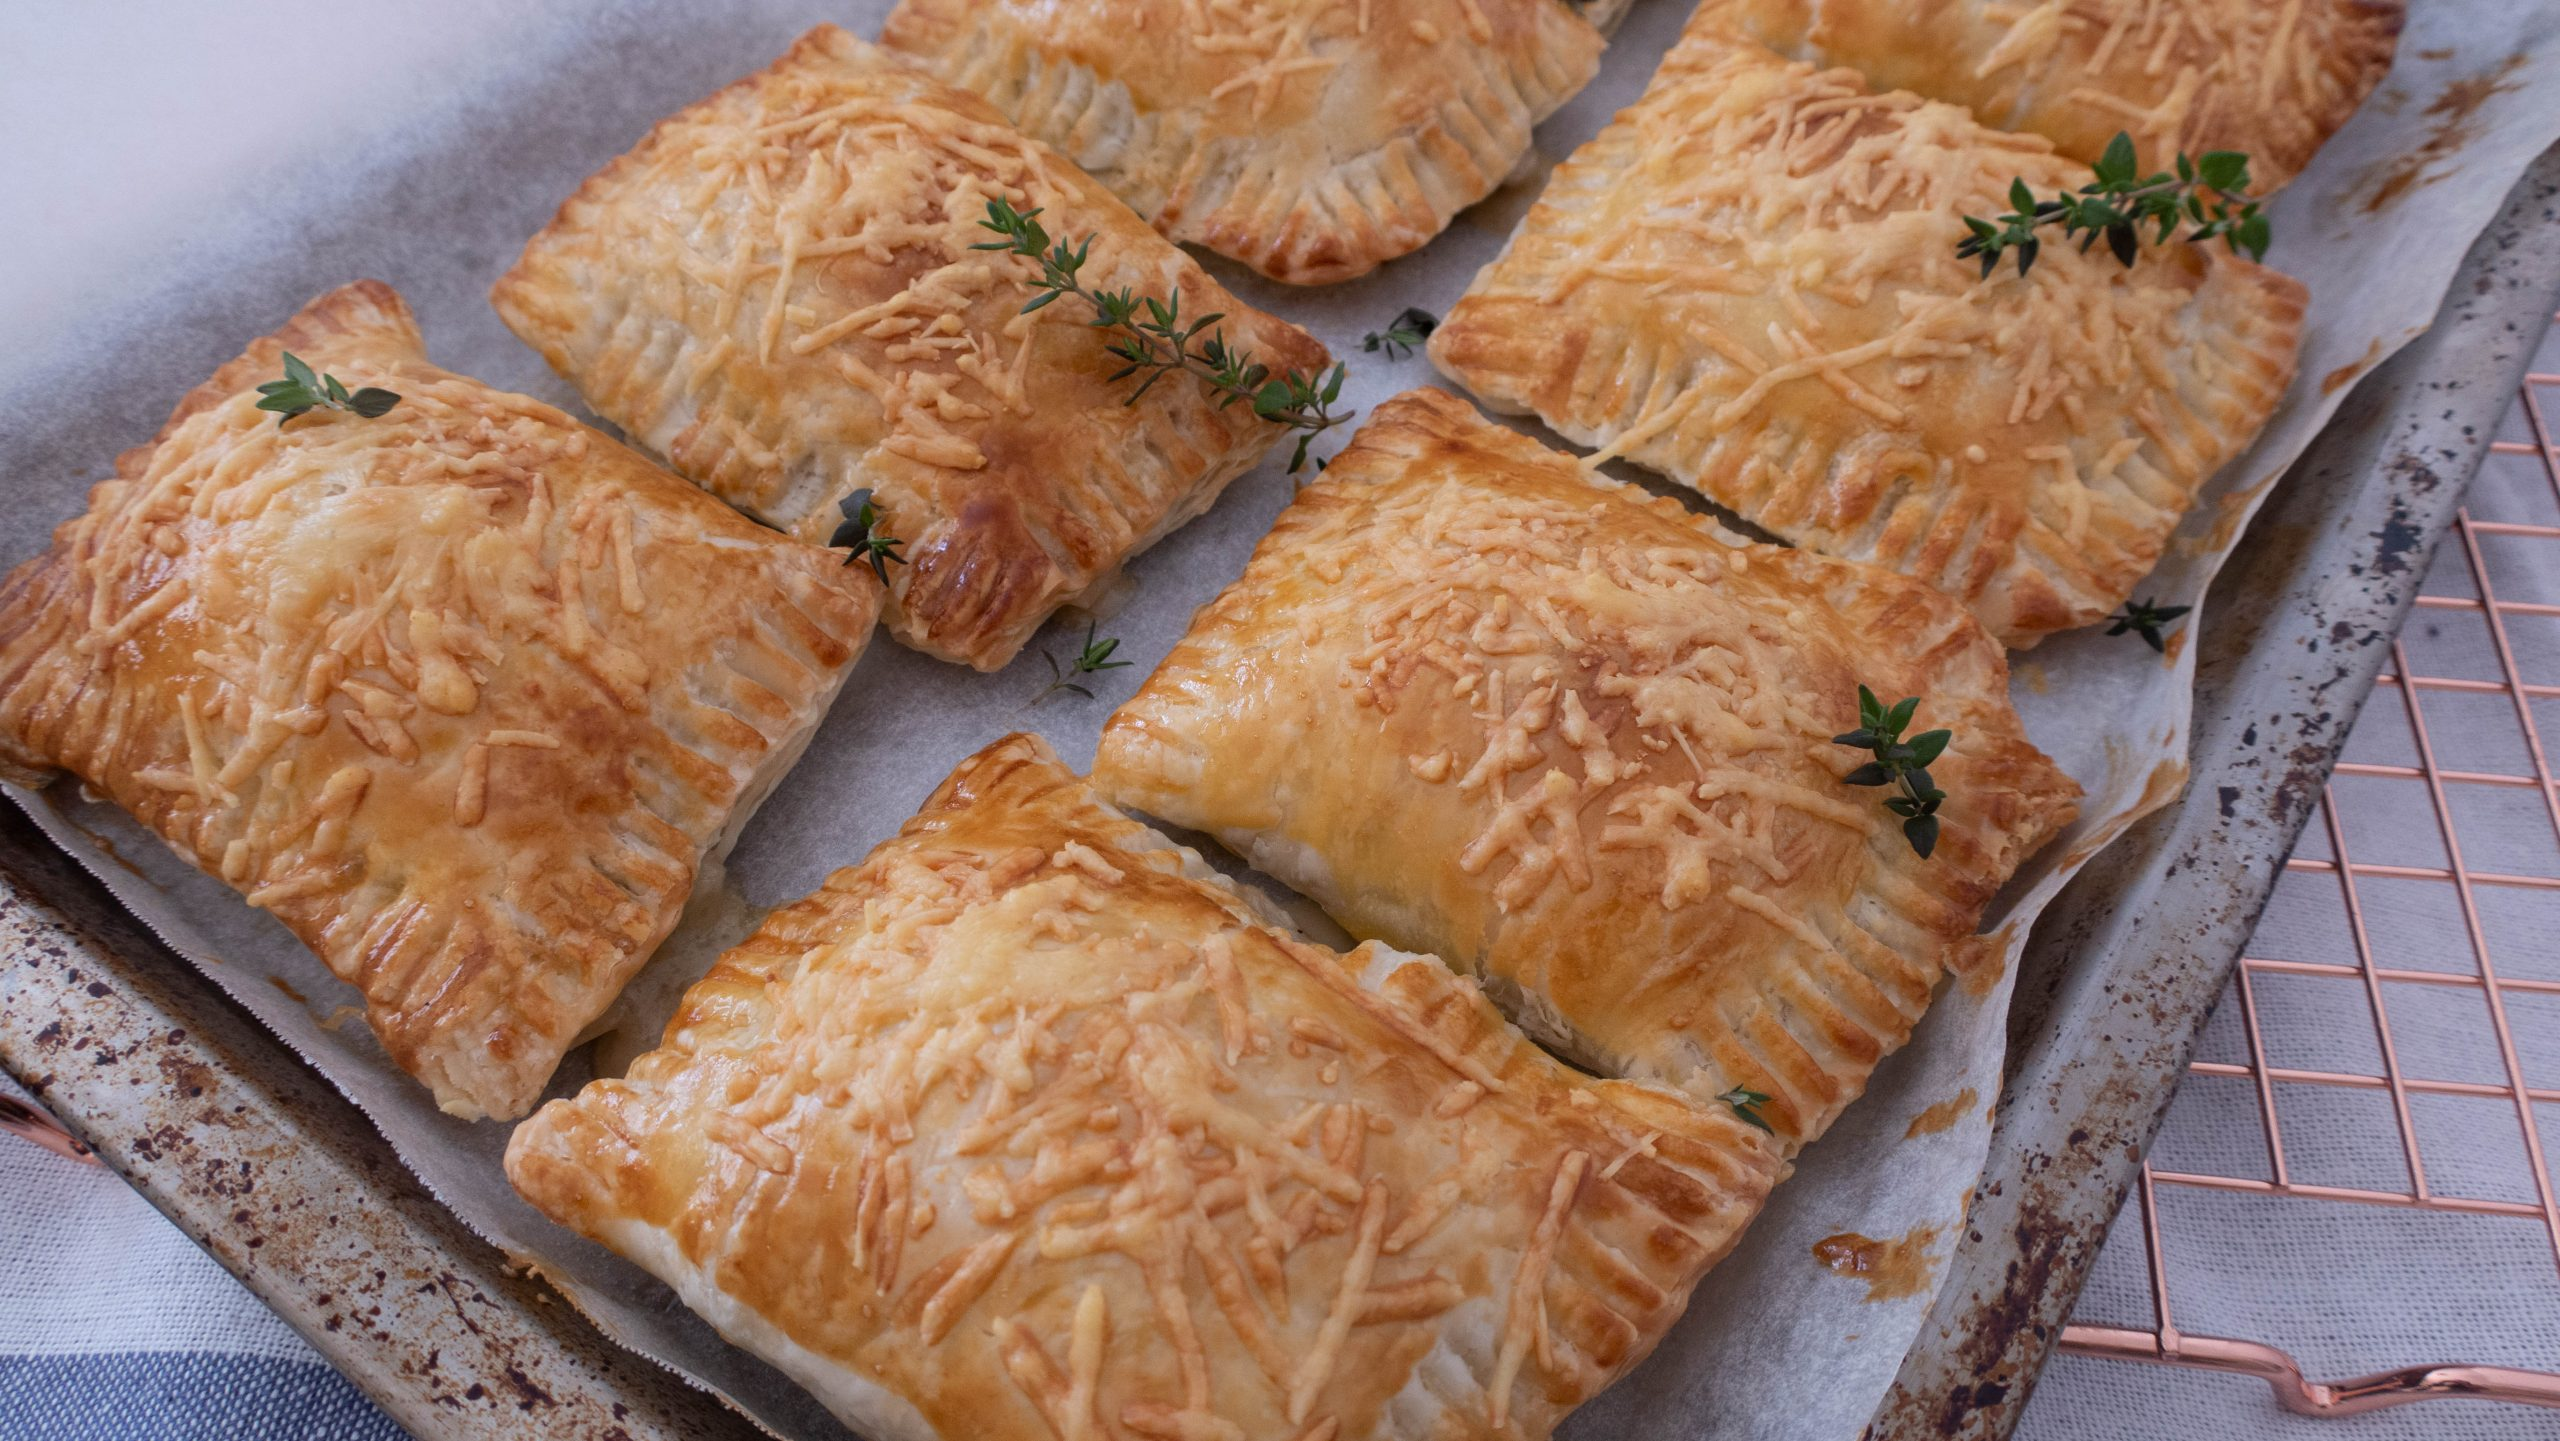 eight golden brown pastries garnished with fresh thyme in a baking tray on a rack